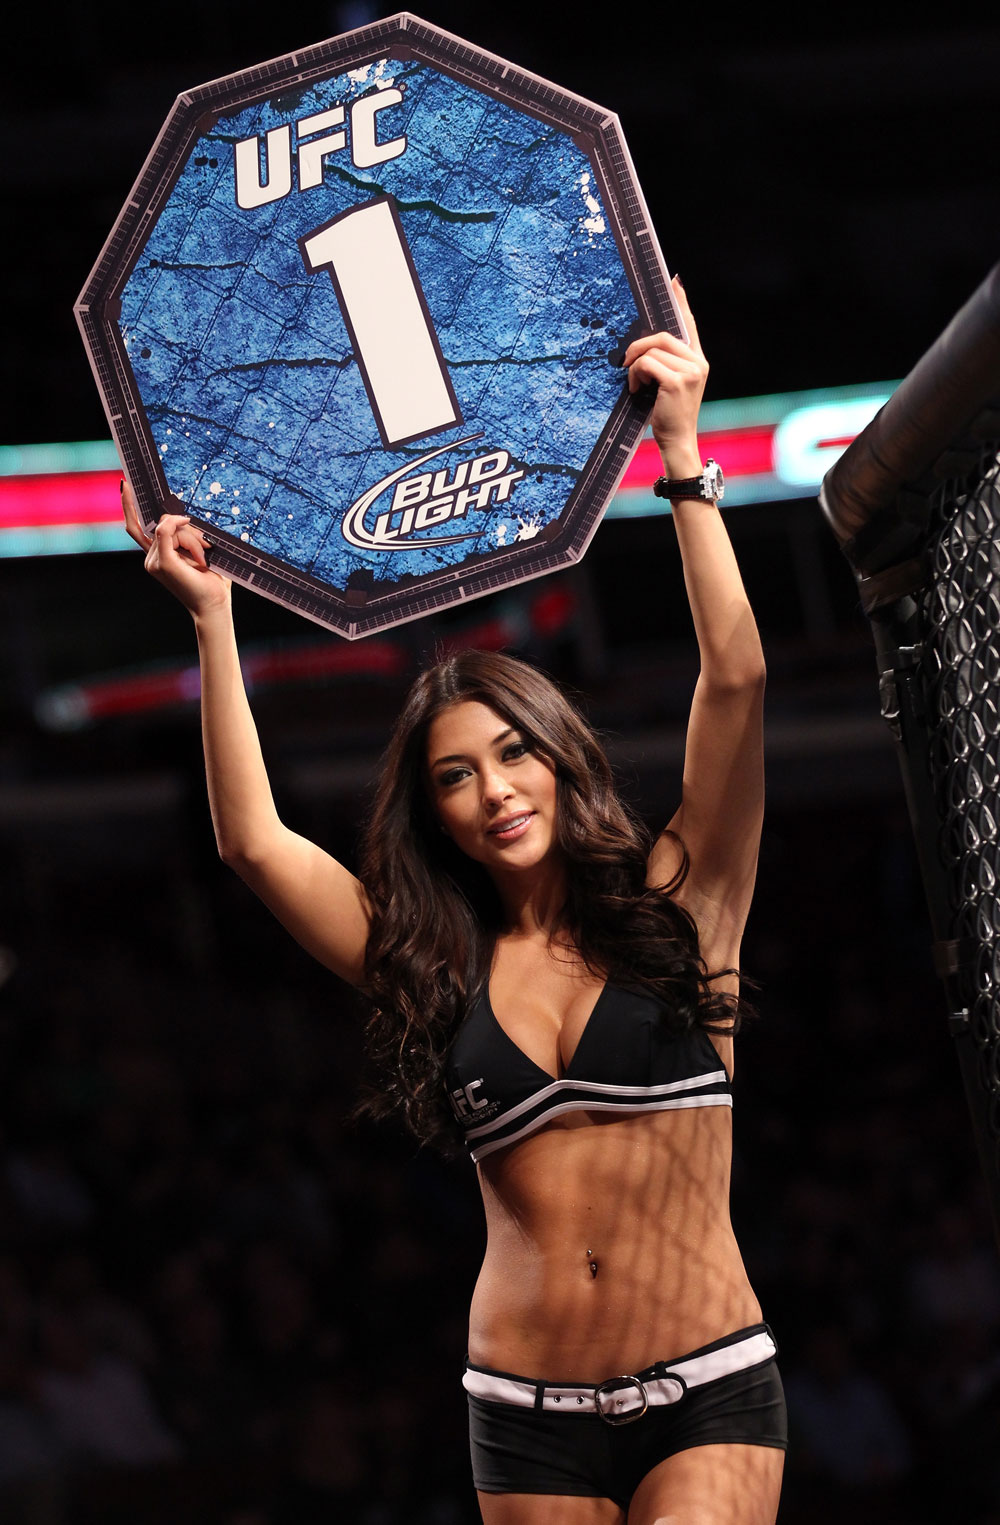 CHICAGO, IL - JANUARY 28:  UFC Octagon Girl Arianny Celeste introduces round 1 before the Camozzi vs Jacoby bout during the UFC on FOX event at United Center on January 28, 2012 in Chicago, Illinois.  (Photo by Nick Laham/Zuffa LLC/Zuffa LLC via Getty Images) *** Local Caption *** Arianny Celeste